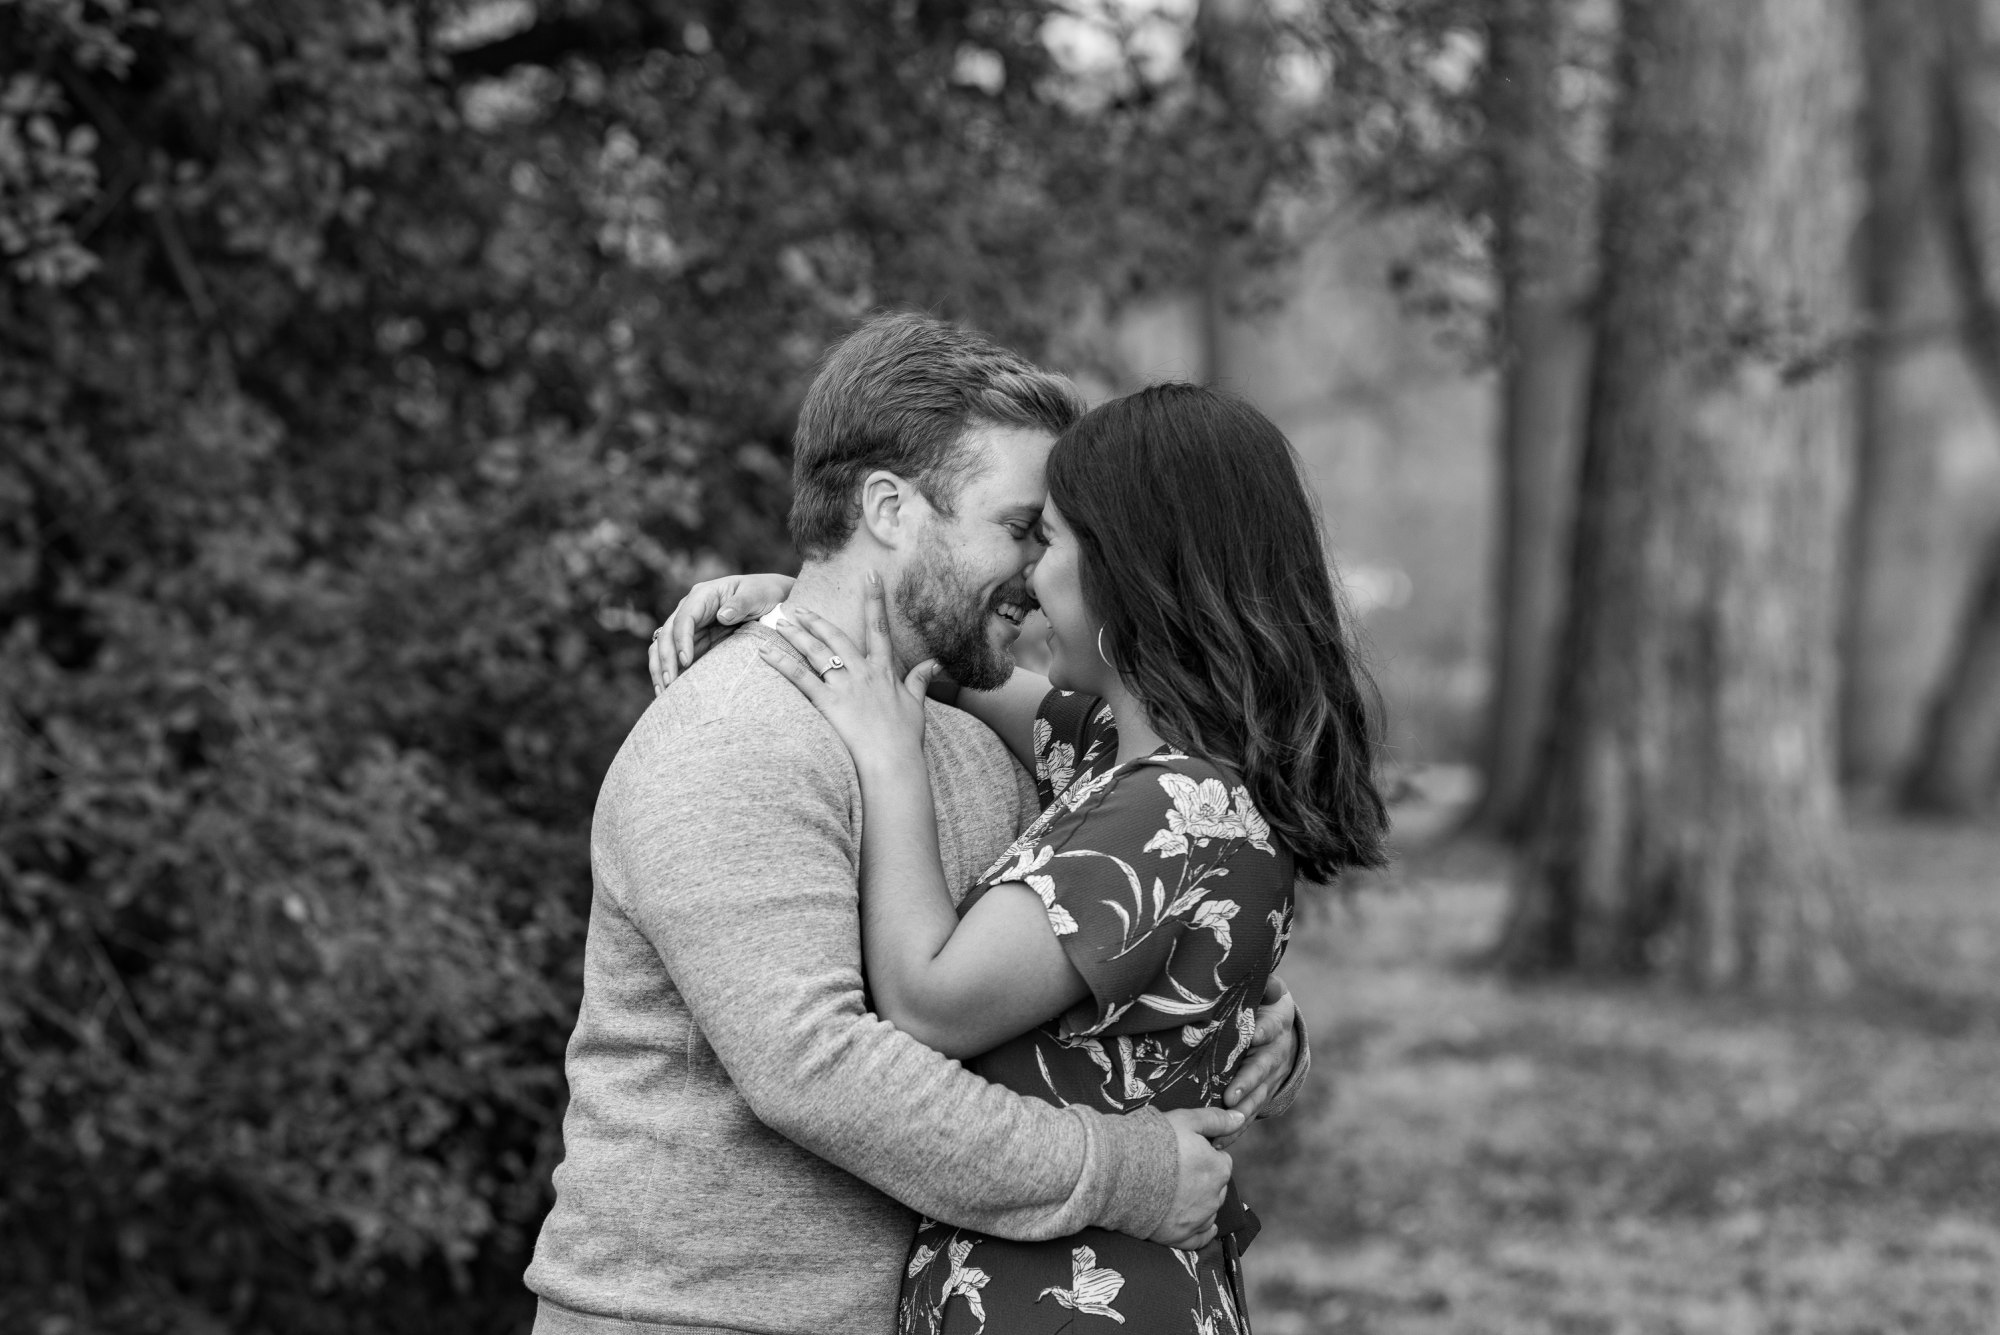 Romantic Black and White Engagement Session Forest Park St Louis Mo